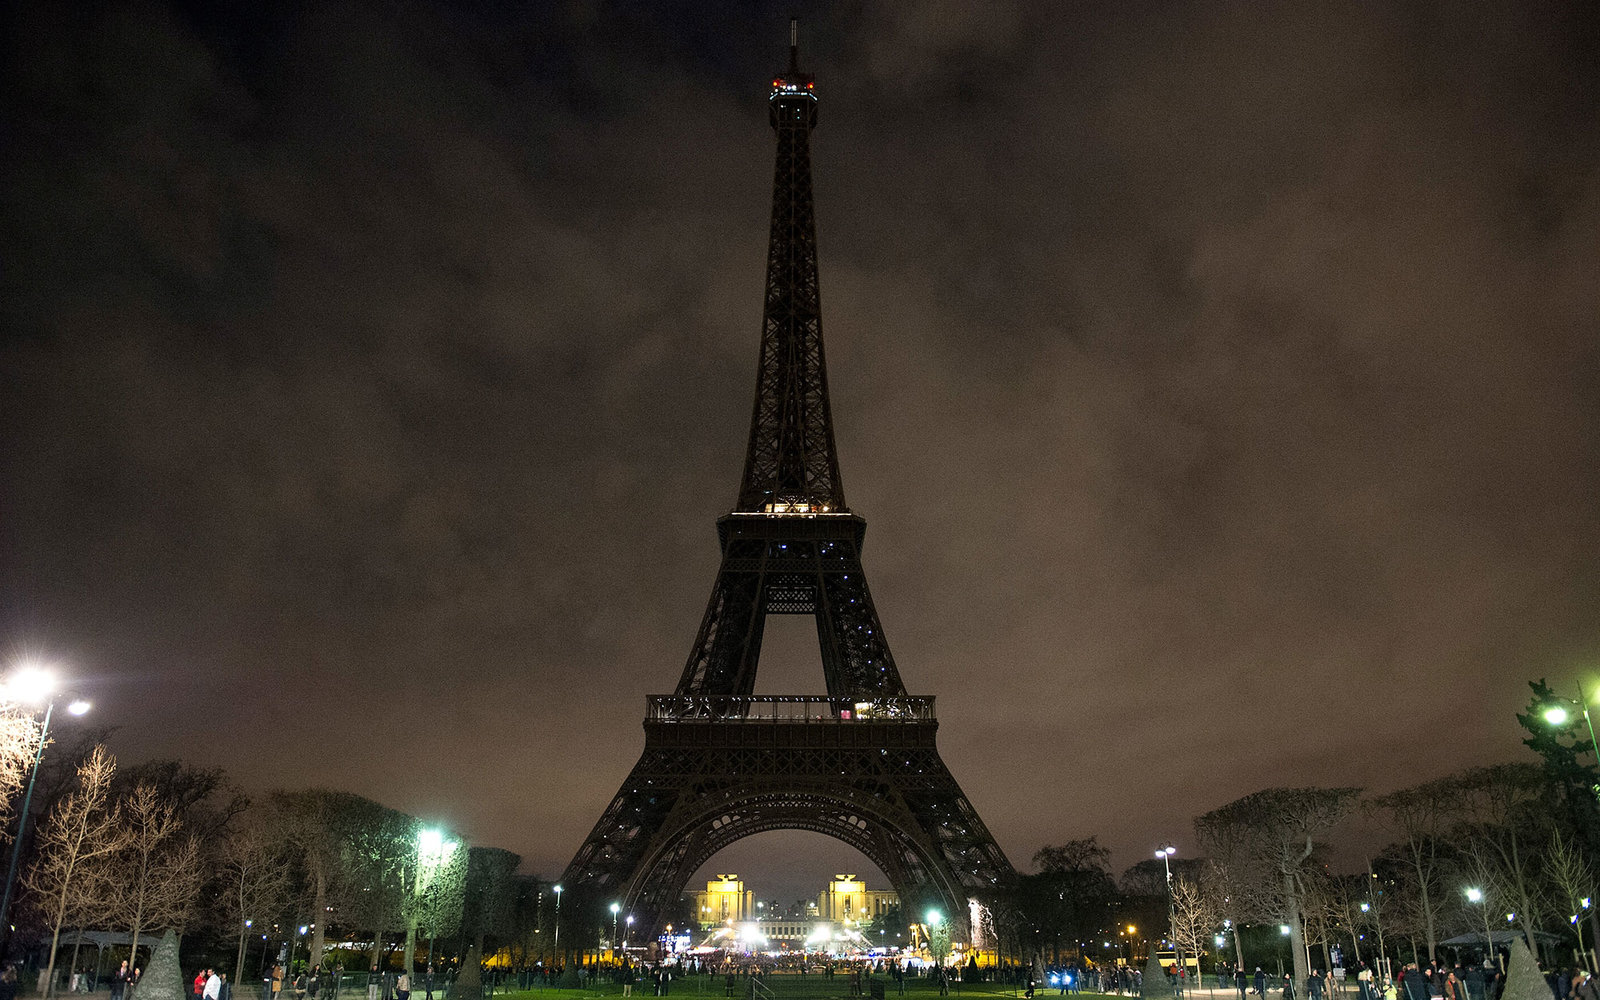 PARIS, FRANCE - MARCH 28:  The Eiffel Tower is plunged into darkness in support of the Earth Hour environmental campaign on March 28, 2015 in Paris, France. People in thousands of cities across the world are expected to take part in the annual event organ